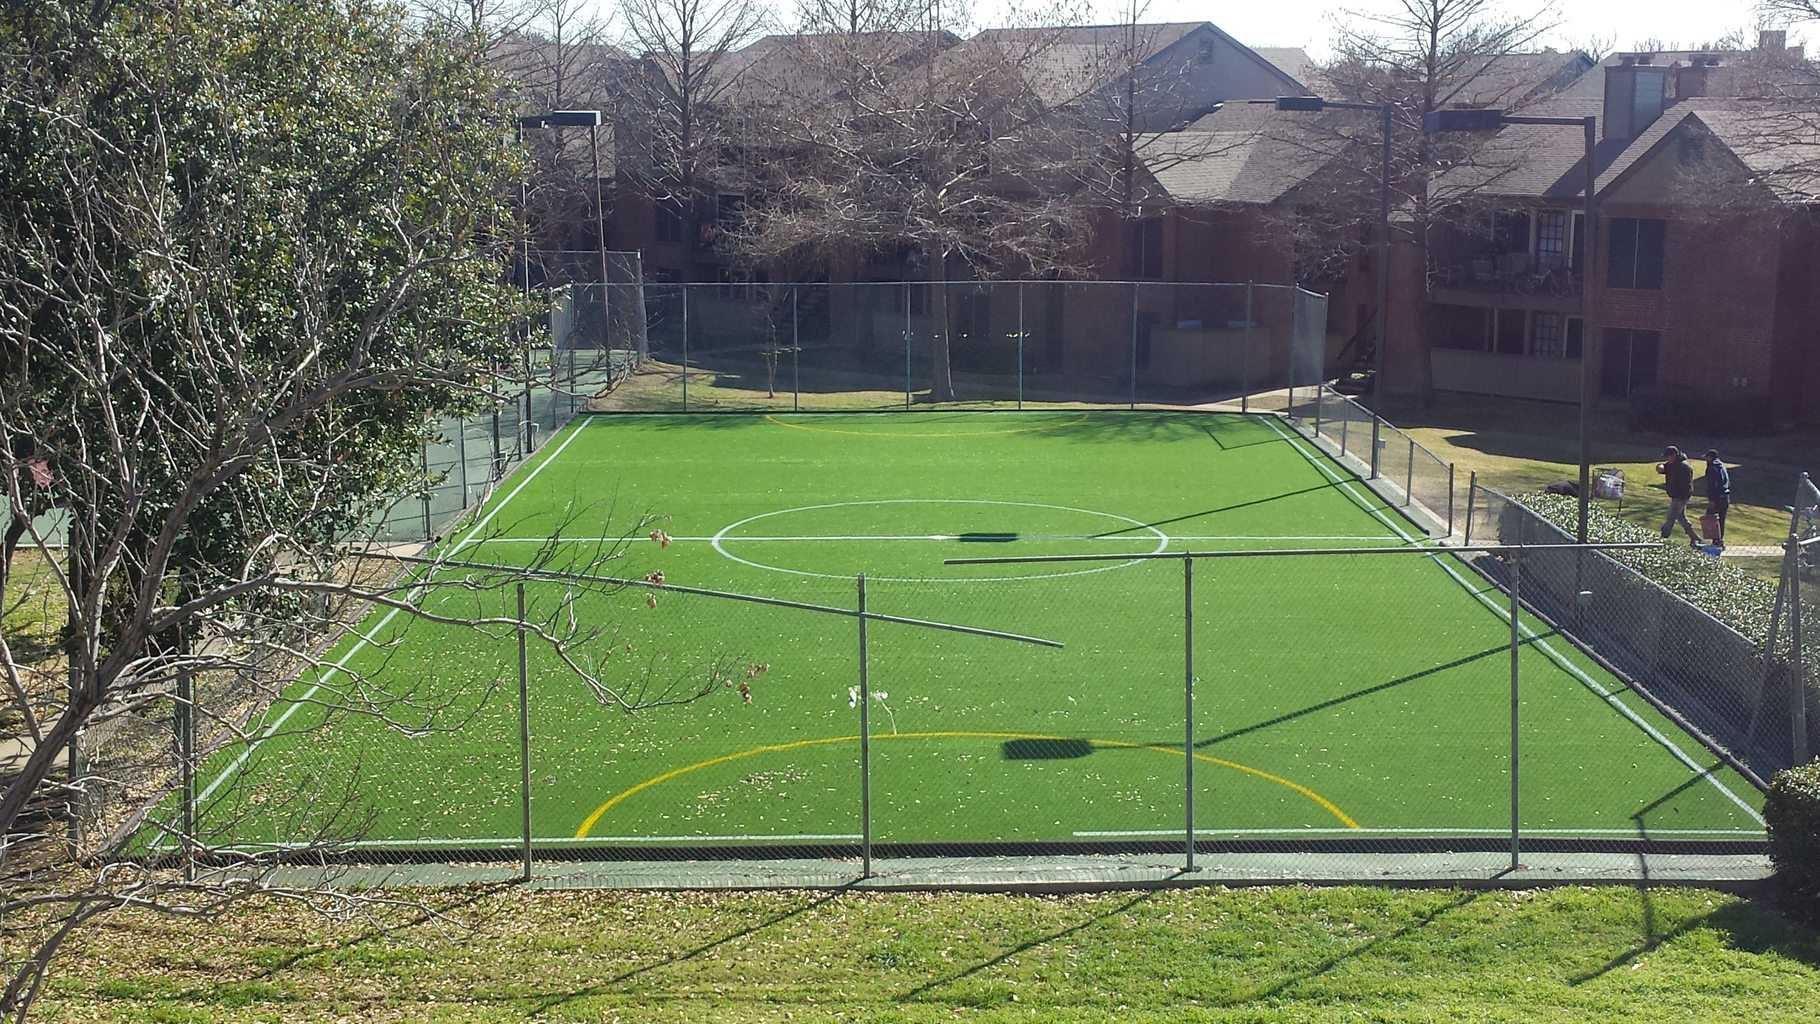 Artificial Turf, Soccer, Baseball, Super Bowl, Natural Turf, Natural Grass, NCAA, AirField Systems, Sports Field Drainage, Athletic Field Drainage, Baseball field Drainage, Football Field Drainage, Soccer field Drainage, Lacrosse field Drainage, Porous Paving System, Perched Water table, porous paving, grass pave, grass paving, geo grid, geo cell, turf reinforcement mat, turf performance field, AirField Systems, golf course drainage, sand bunker drainage, tee box drainage, golf green drainage, Porous paving system, perched water table, fairway drainage, cart paths, porous paving, grass paving, grass pave, grass paving, geo grid, geo cell, turf reinforcement mat, AirField Systems, porous paving system, perched water table, porous paving, grass fire lanes, grass fire lane, gravel paving, grass pave, grass paving, turf reinforcement mat, fire lane, reinforced grass paving, soil stabilization mat, soil stabilization system, sustainable design, storm water harvesting, innovation in design, recycled material,